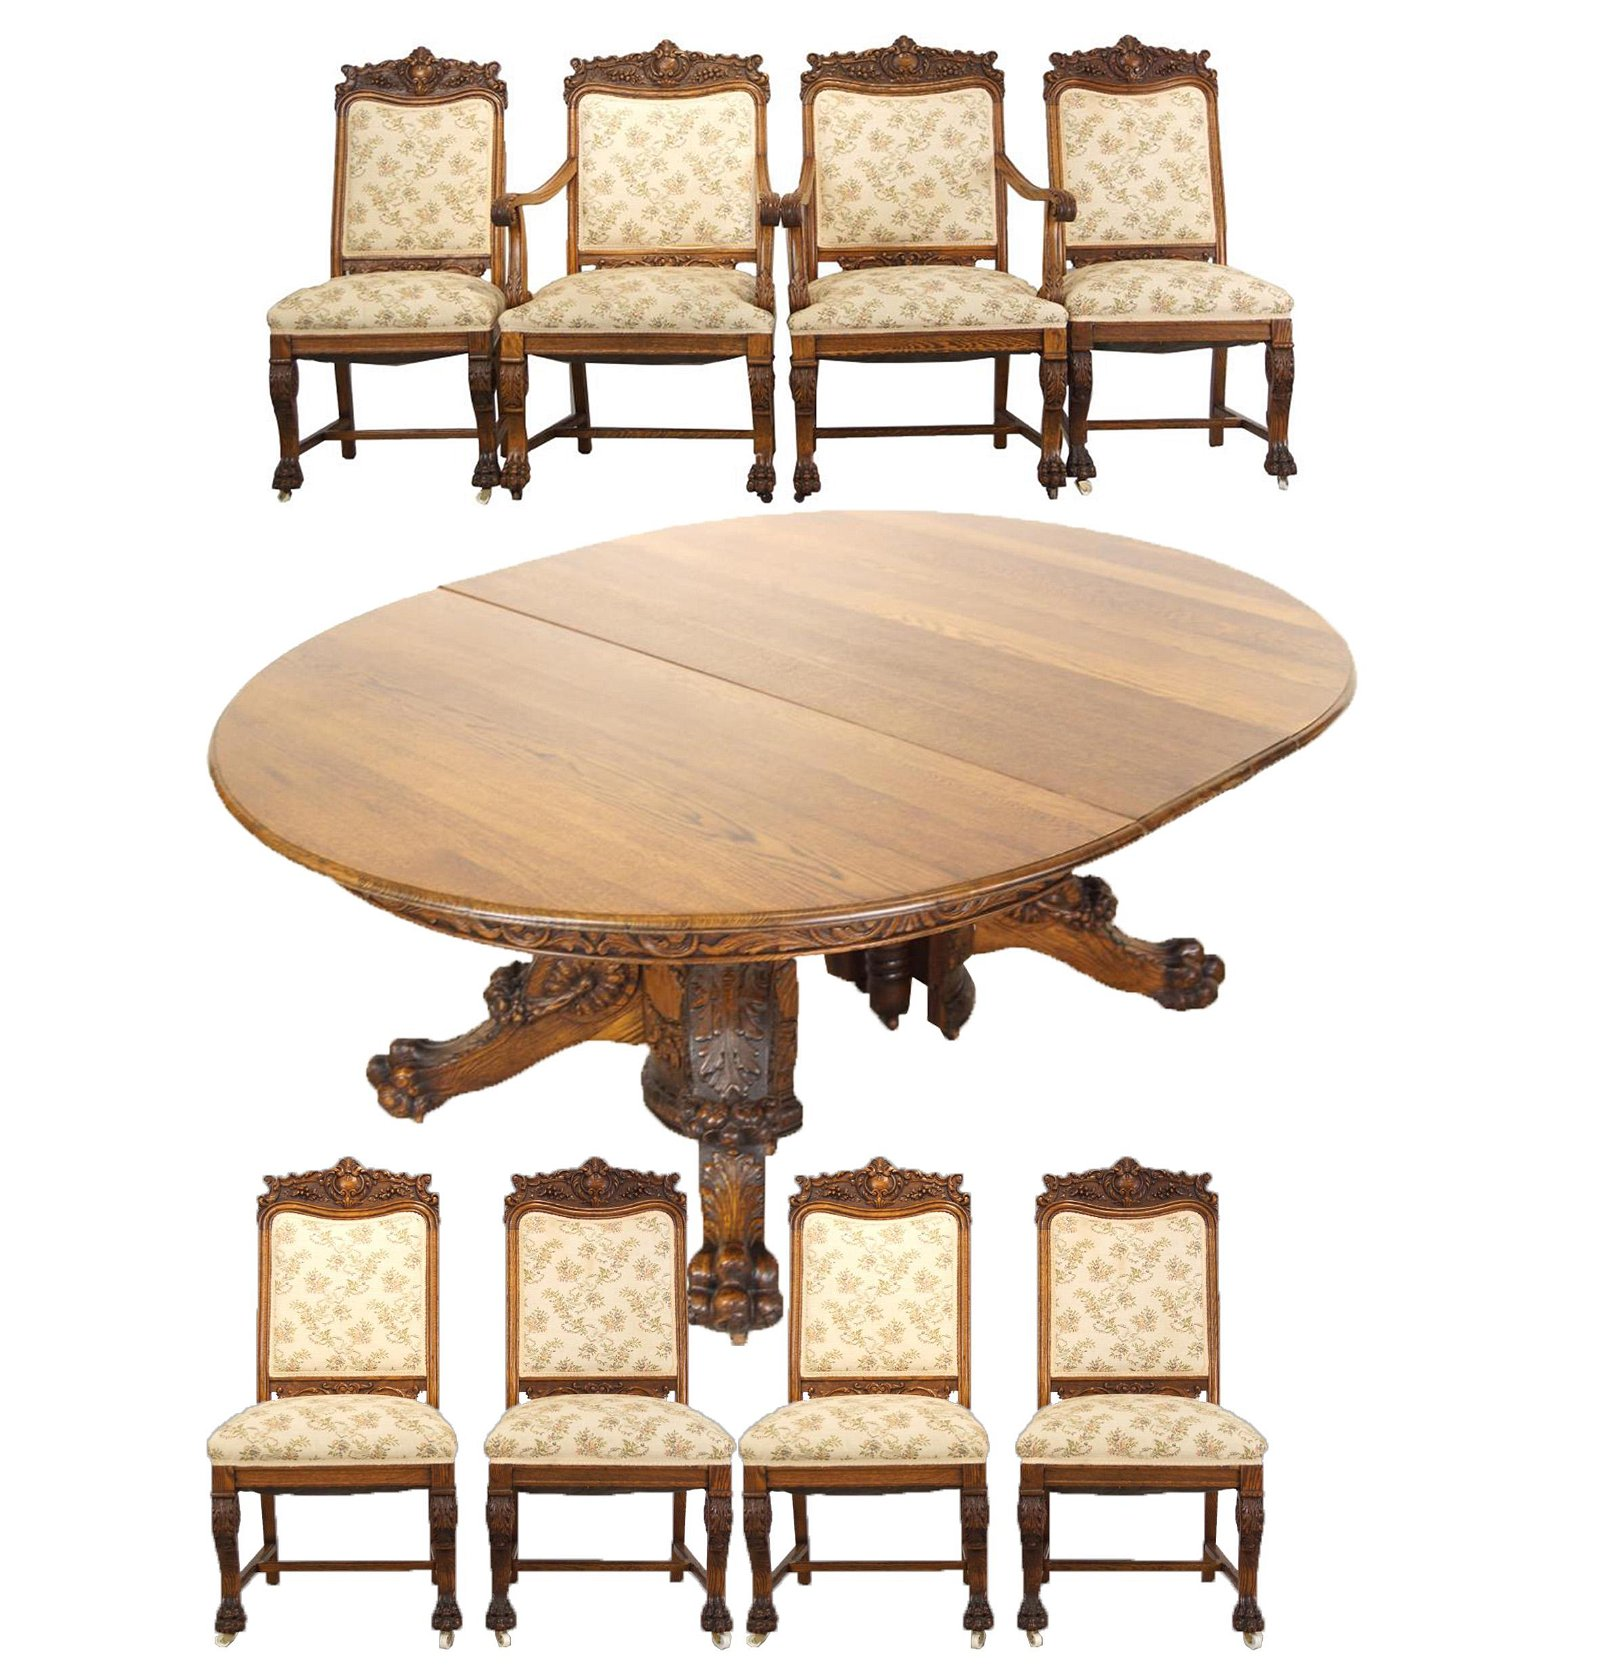 An Antique American Oak Dining table & chairs